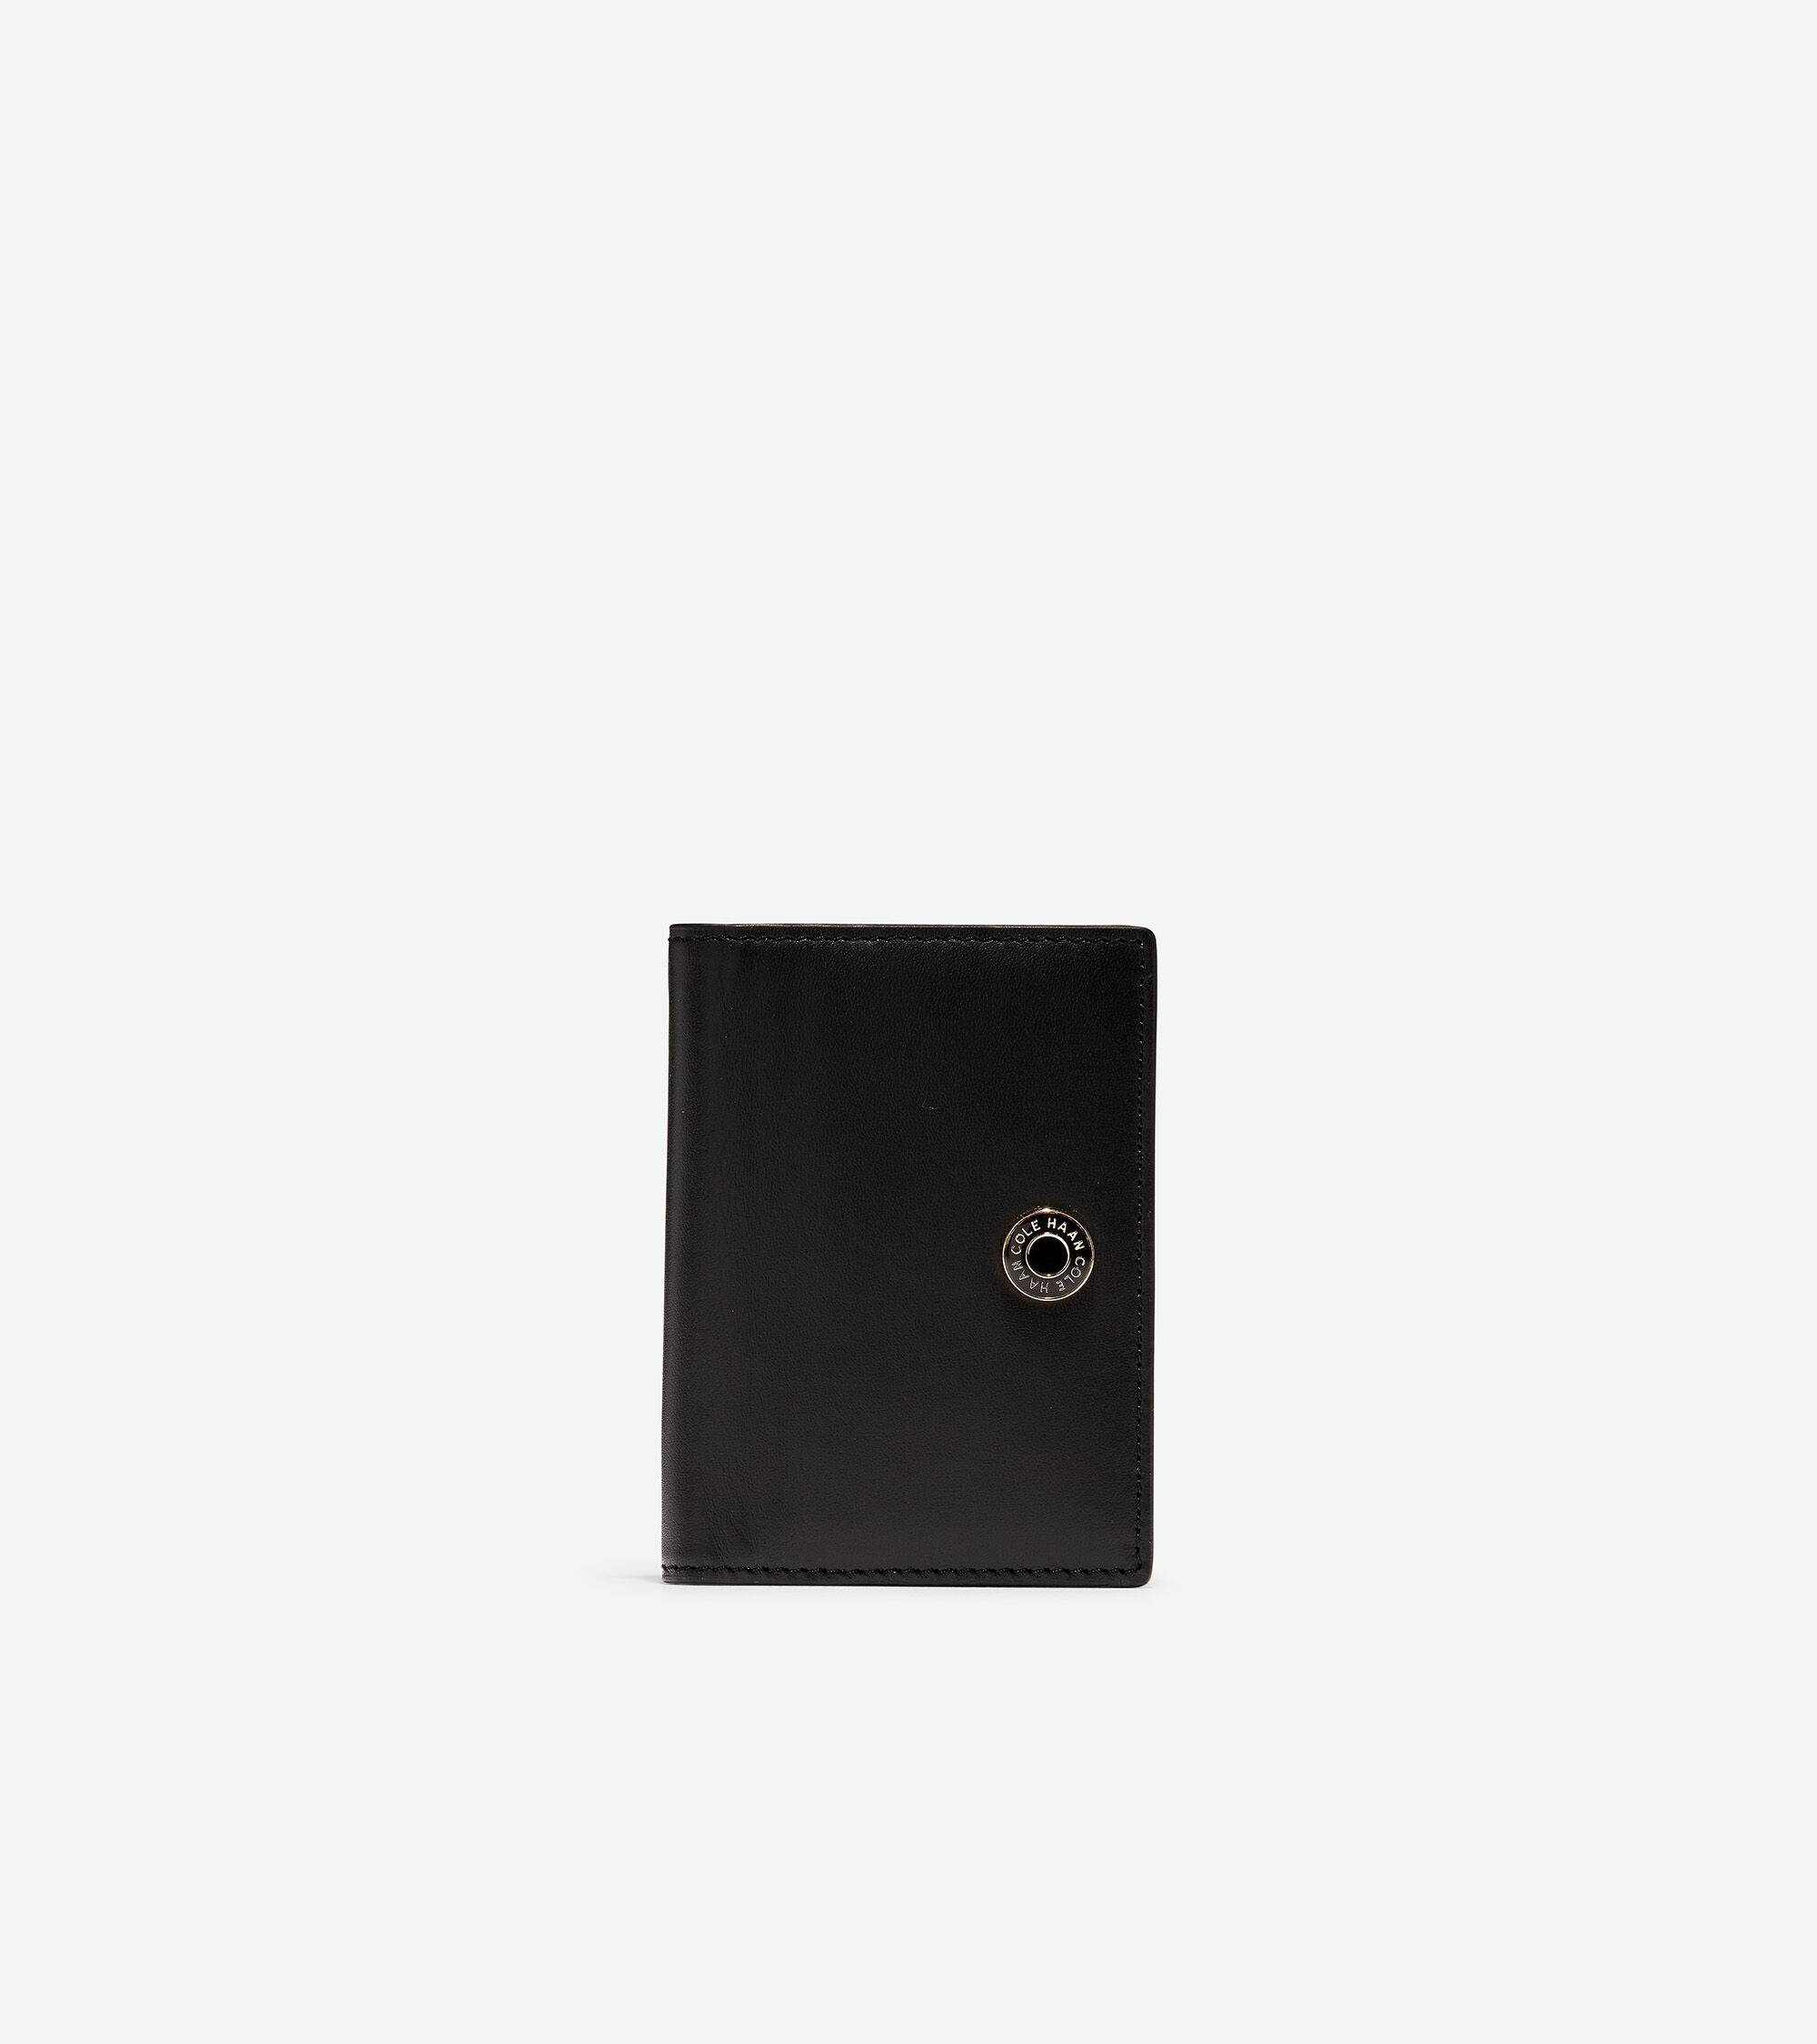 Cole Haan GRANDSERIES Card Case - BLACK - Size: OSFA